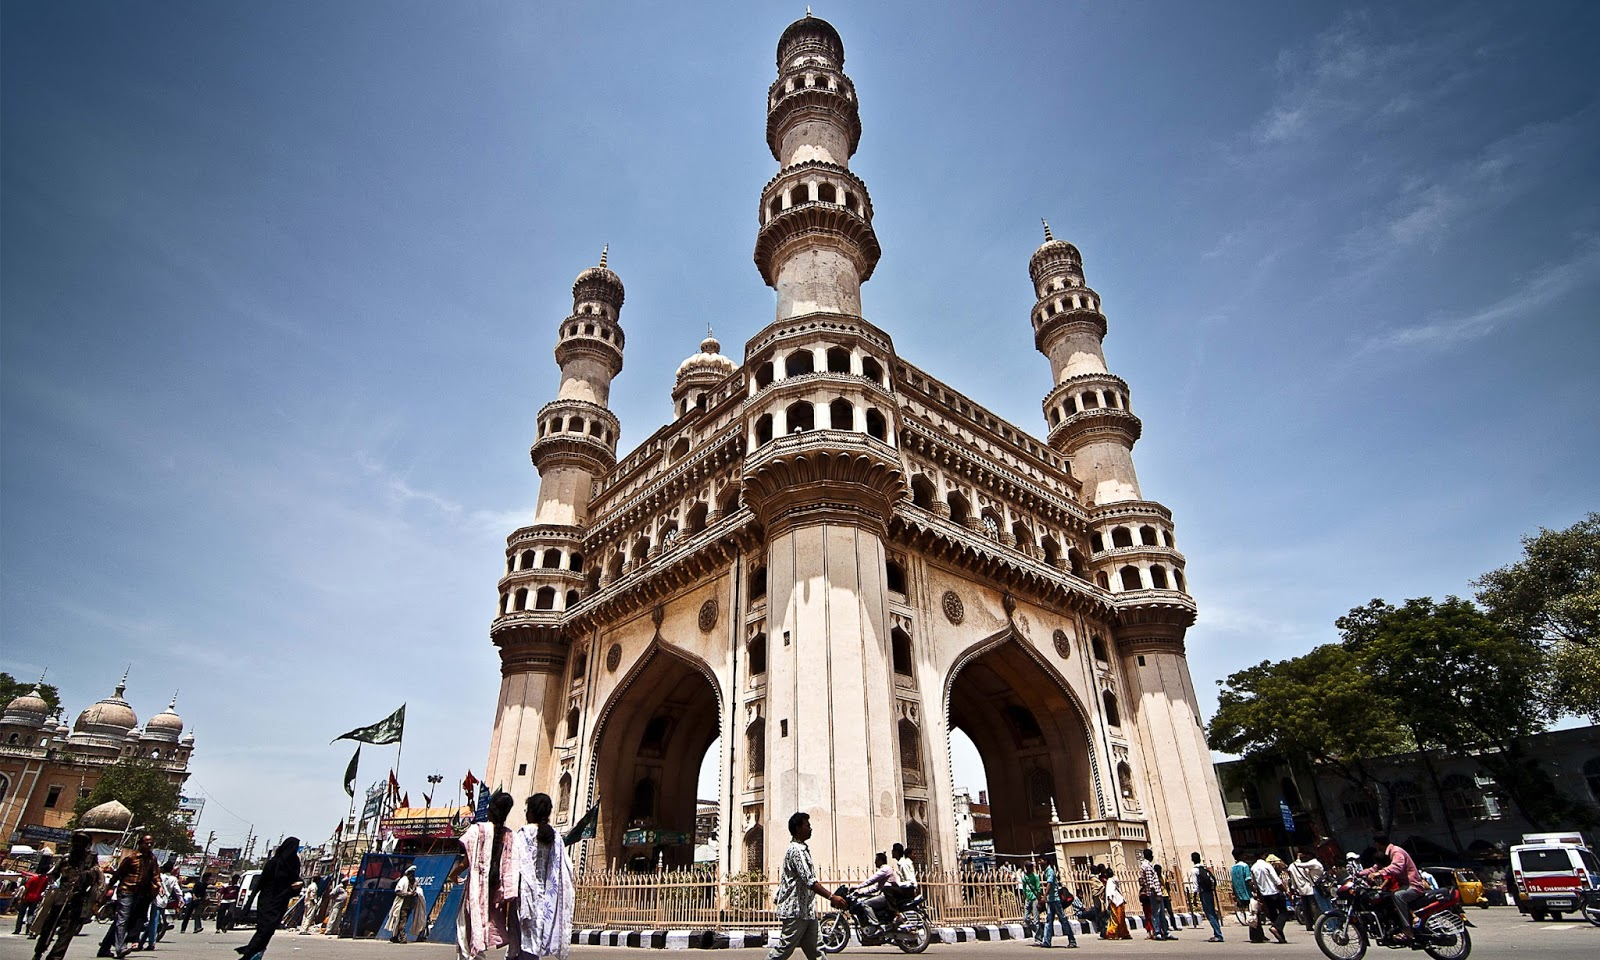 HYDERABAD 1080P WALLPAPERS 87181 | jPhots